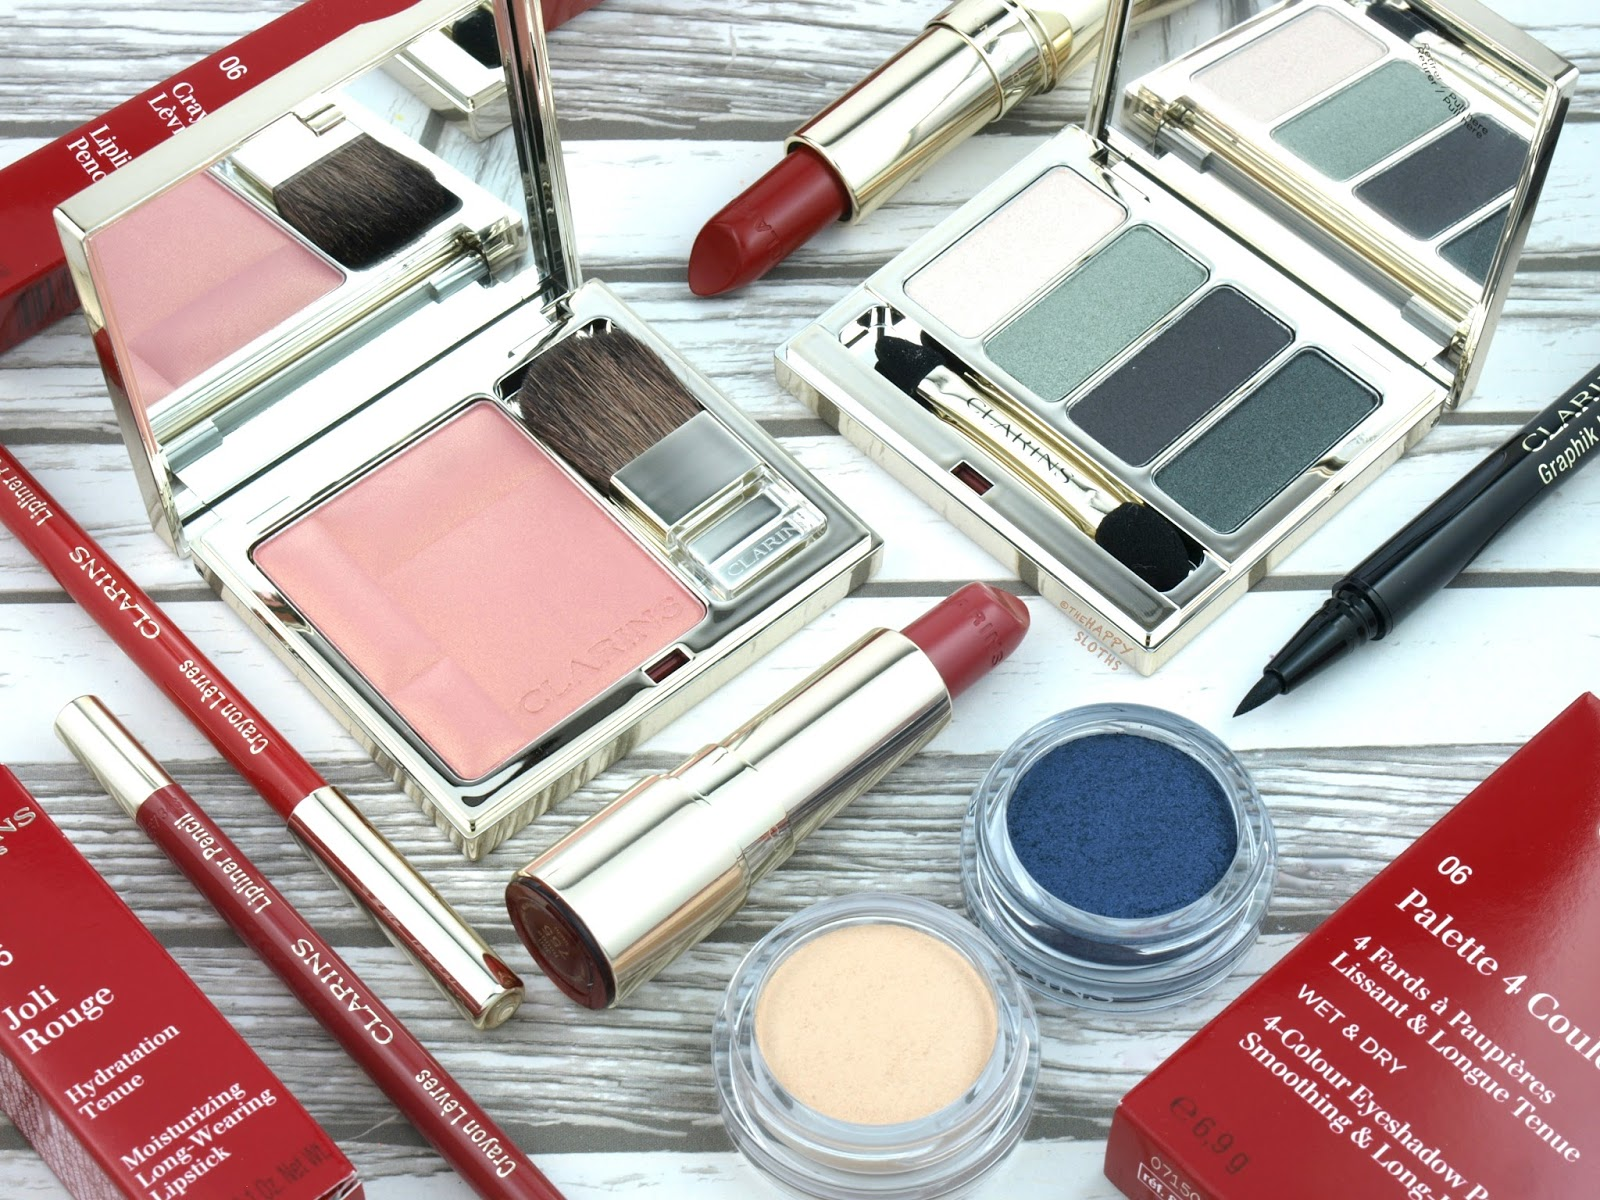 Clarins Fall 2017 Collection Review and Swatches